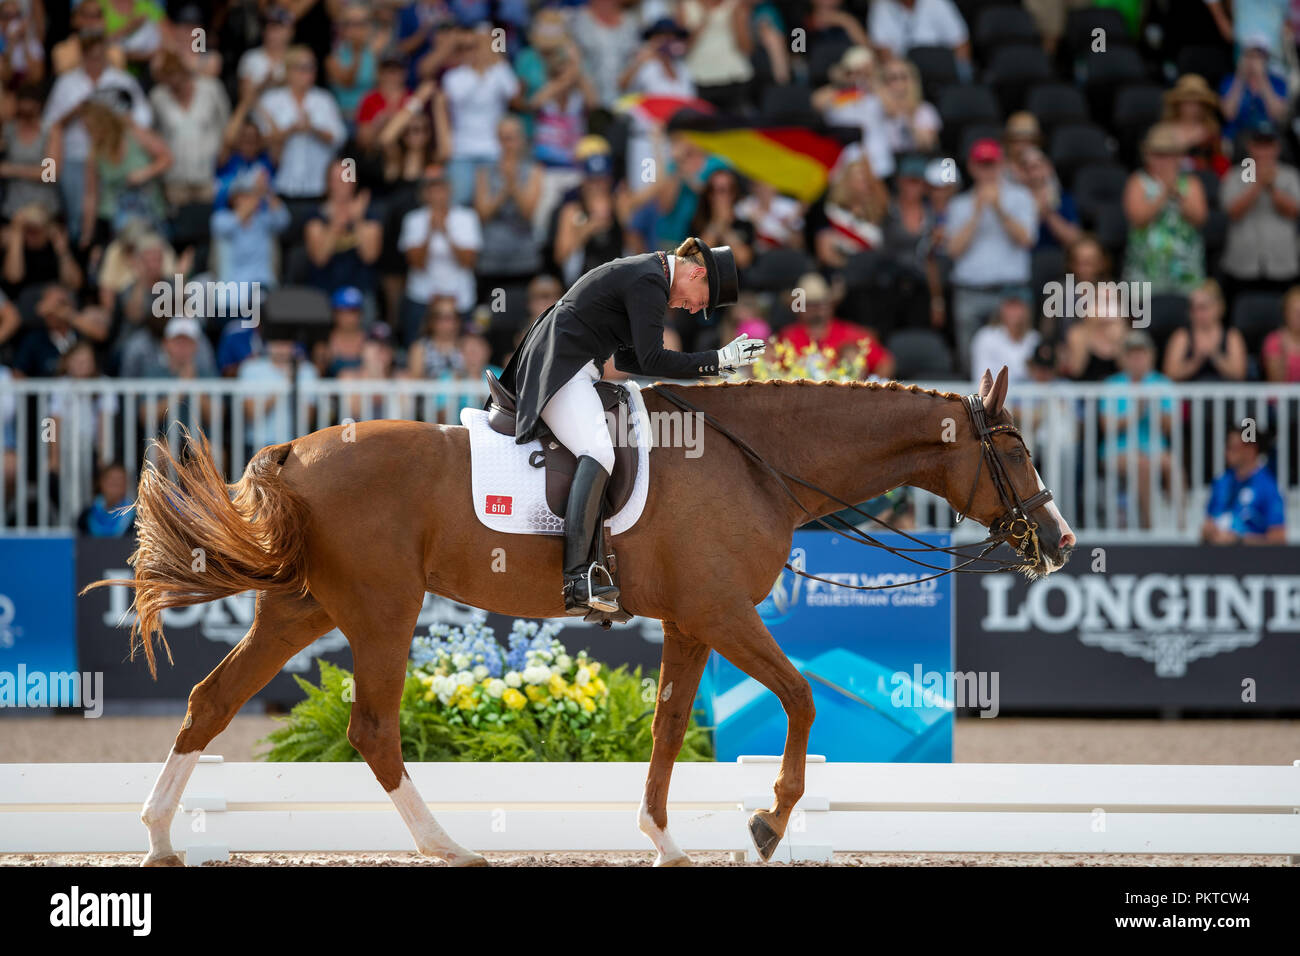 Tryon, USA. 14th Sep, 2018. Riding, FEI World Equestrian Game 2018, Grand Prix Special: Isabell Werth celebrates her victory at Bella Rose. Credit: Stefan Lafrentz/dpa/Alamy Live News - Stock Image